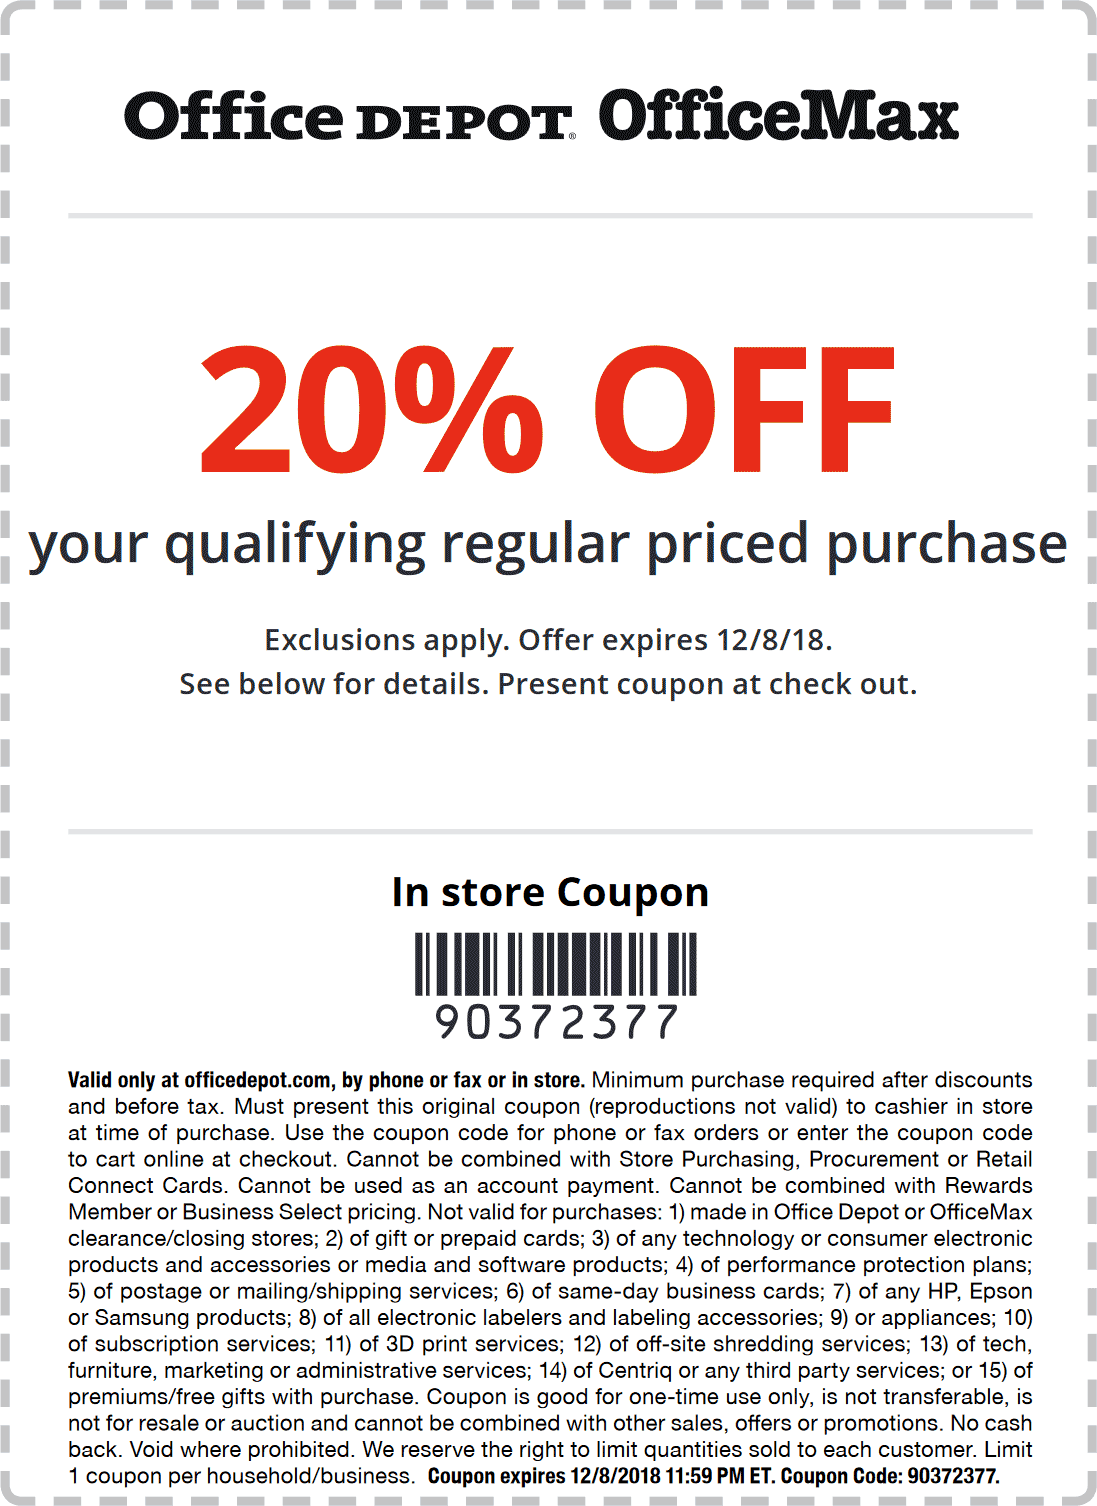 Office Depot Coupon August 2019 20% off at Office Depot & OfficeMax, or online via promo code 90372377